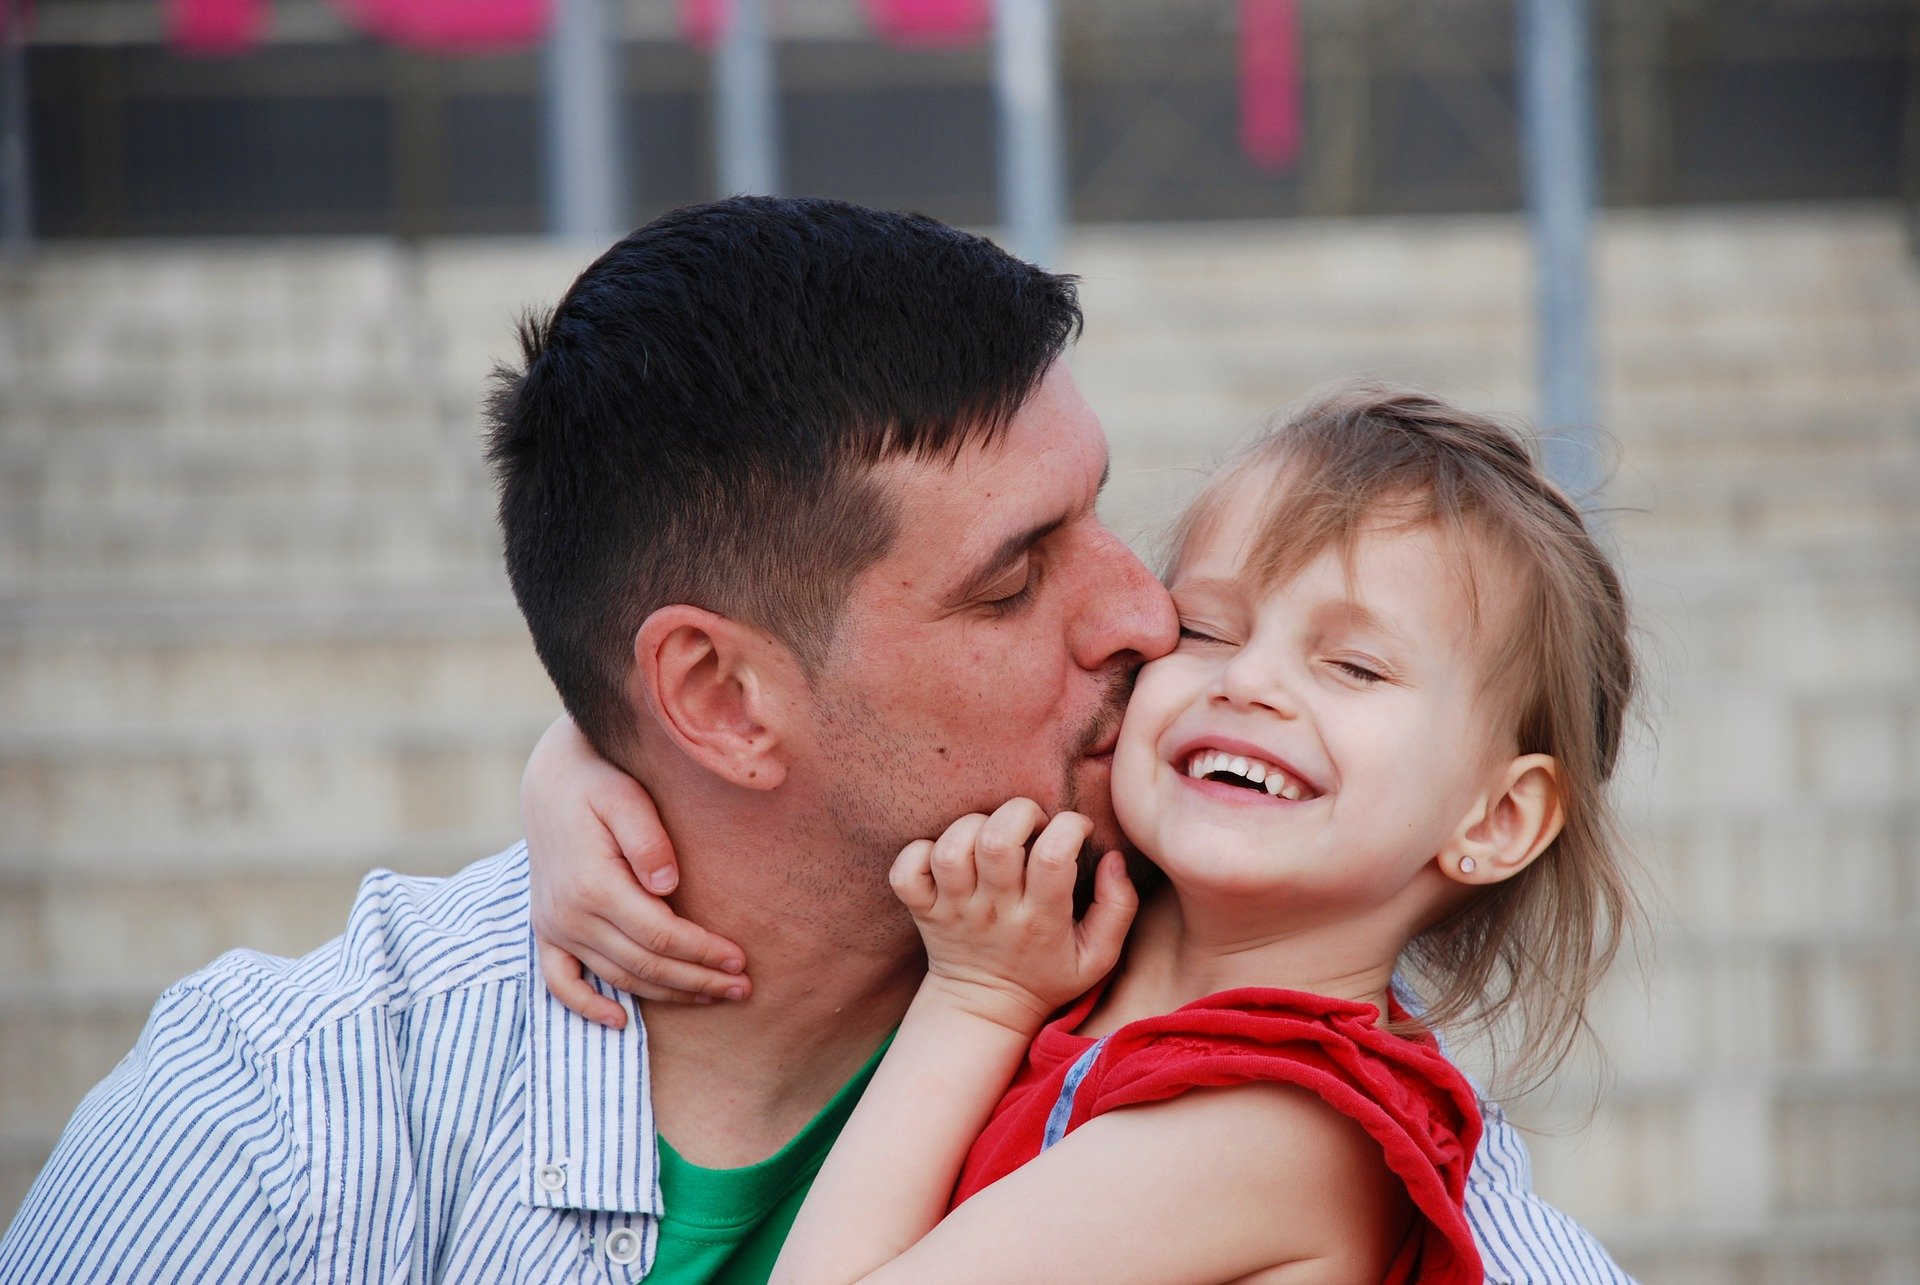 How to Boost Confidence in Kids as an Emotionally Engaged Dad